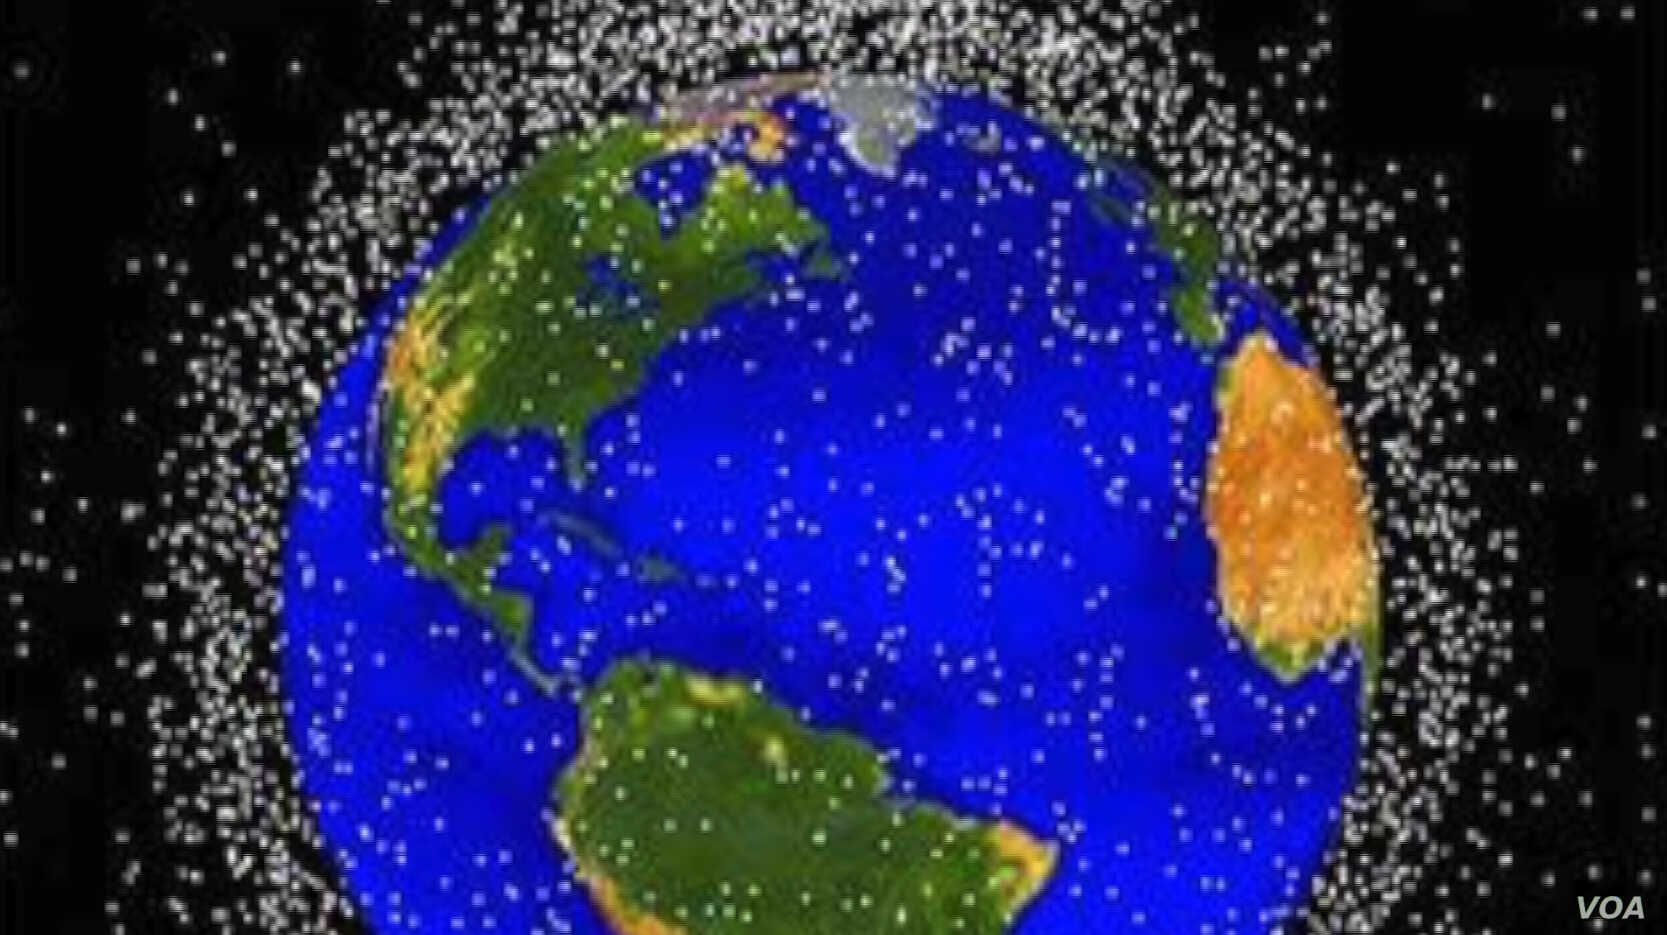 NASA tracks more than 500,000 pieces of space debris as they orbit the Earth, each represented here by a dot.